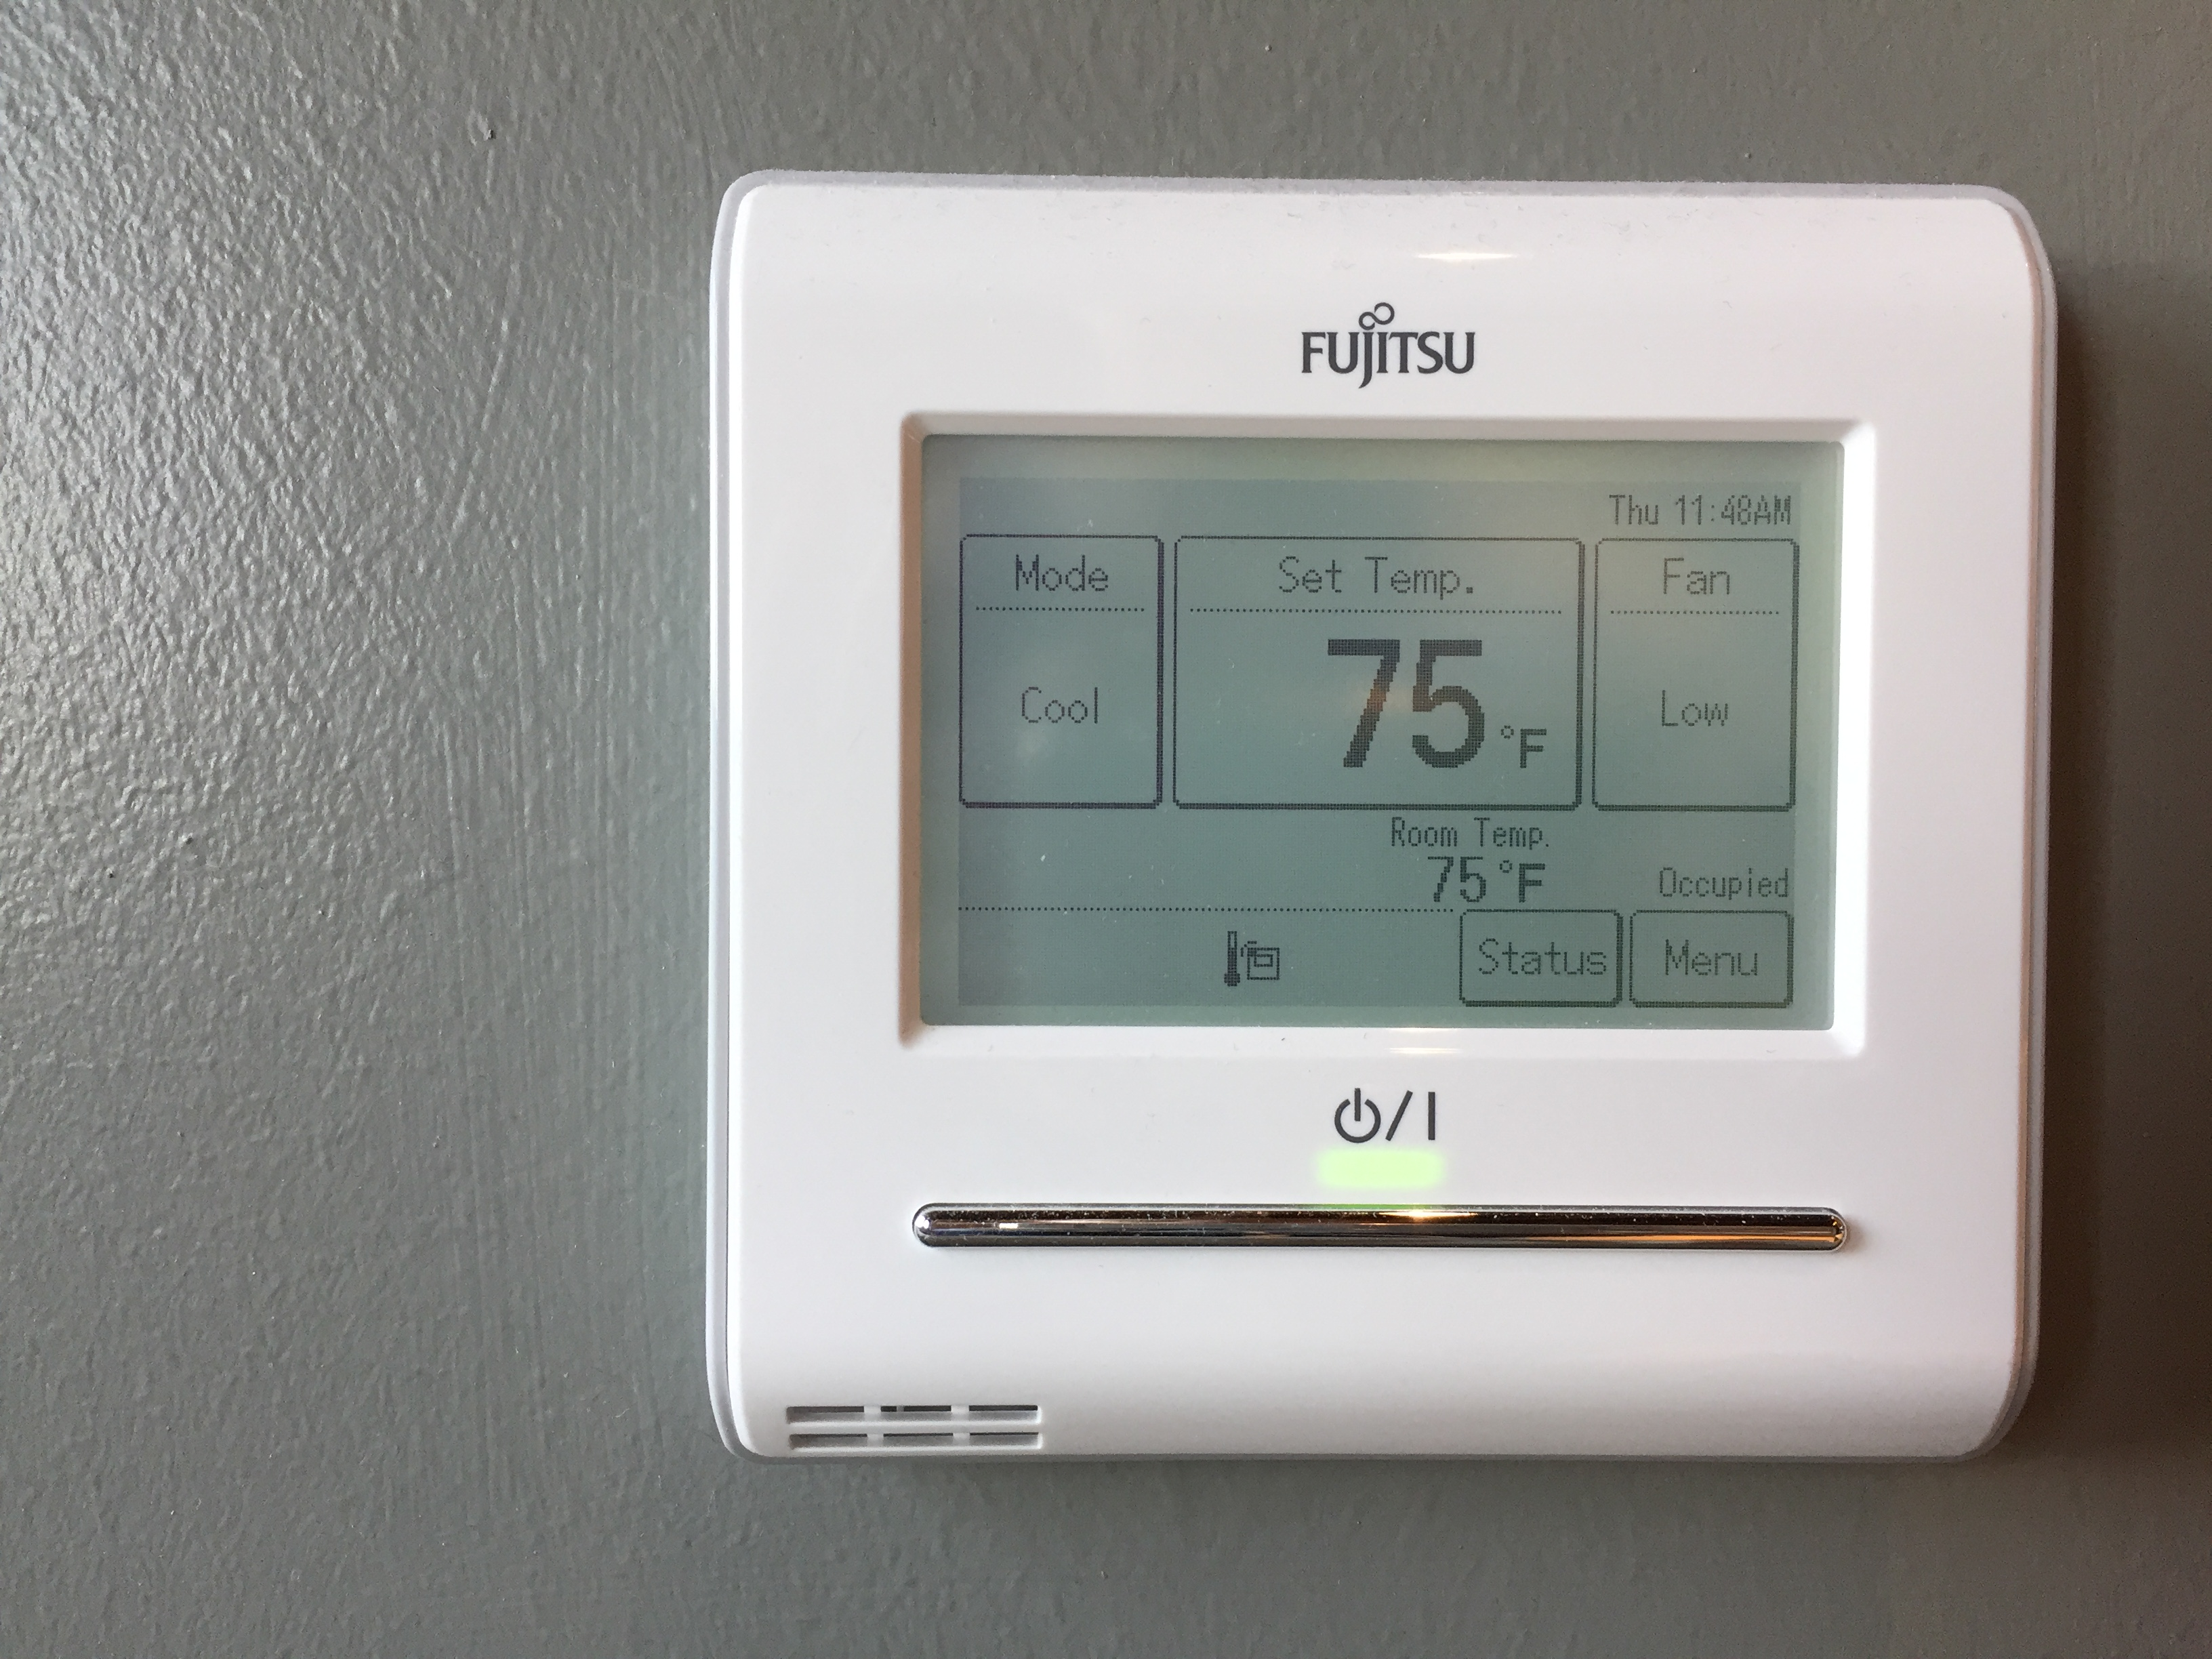 Where Do You Set Your Thermostats